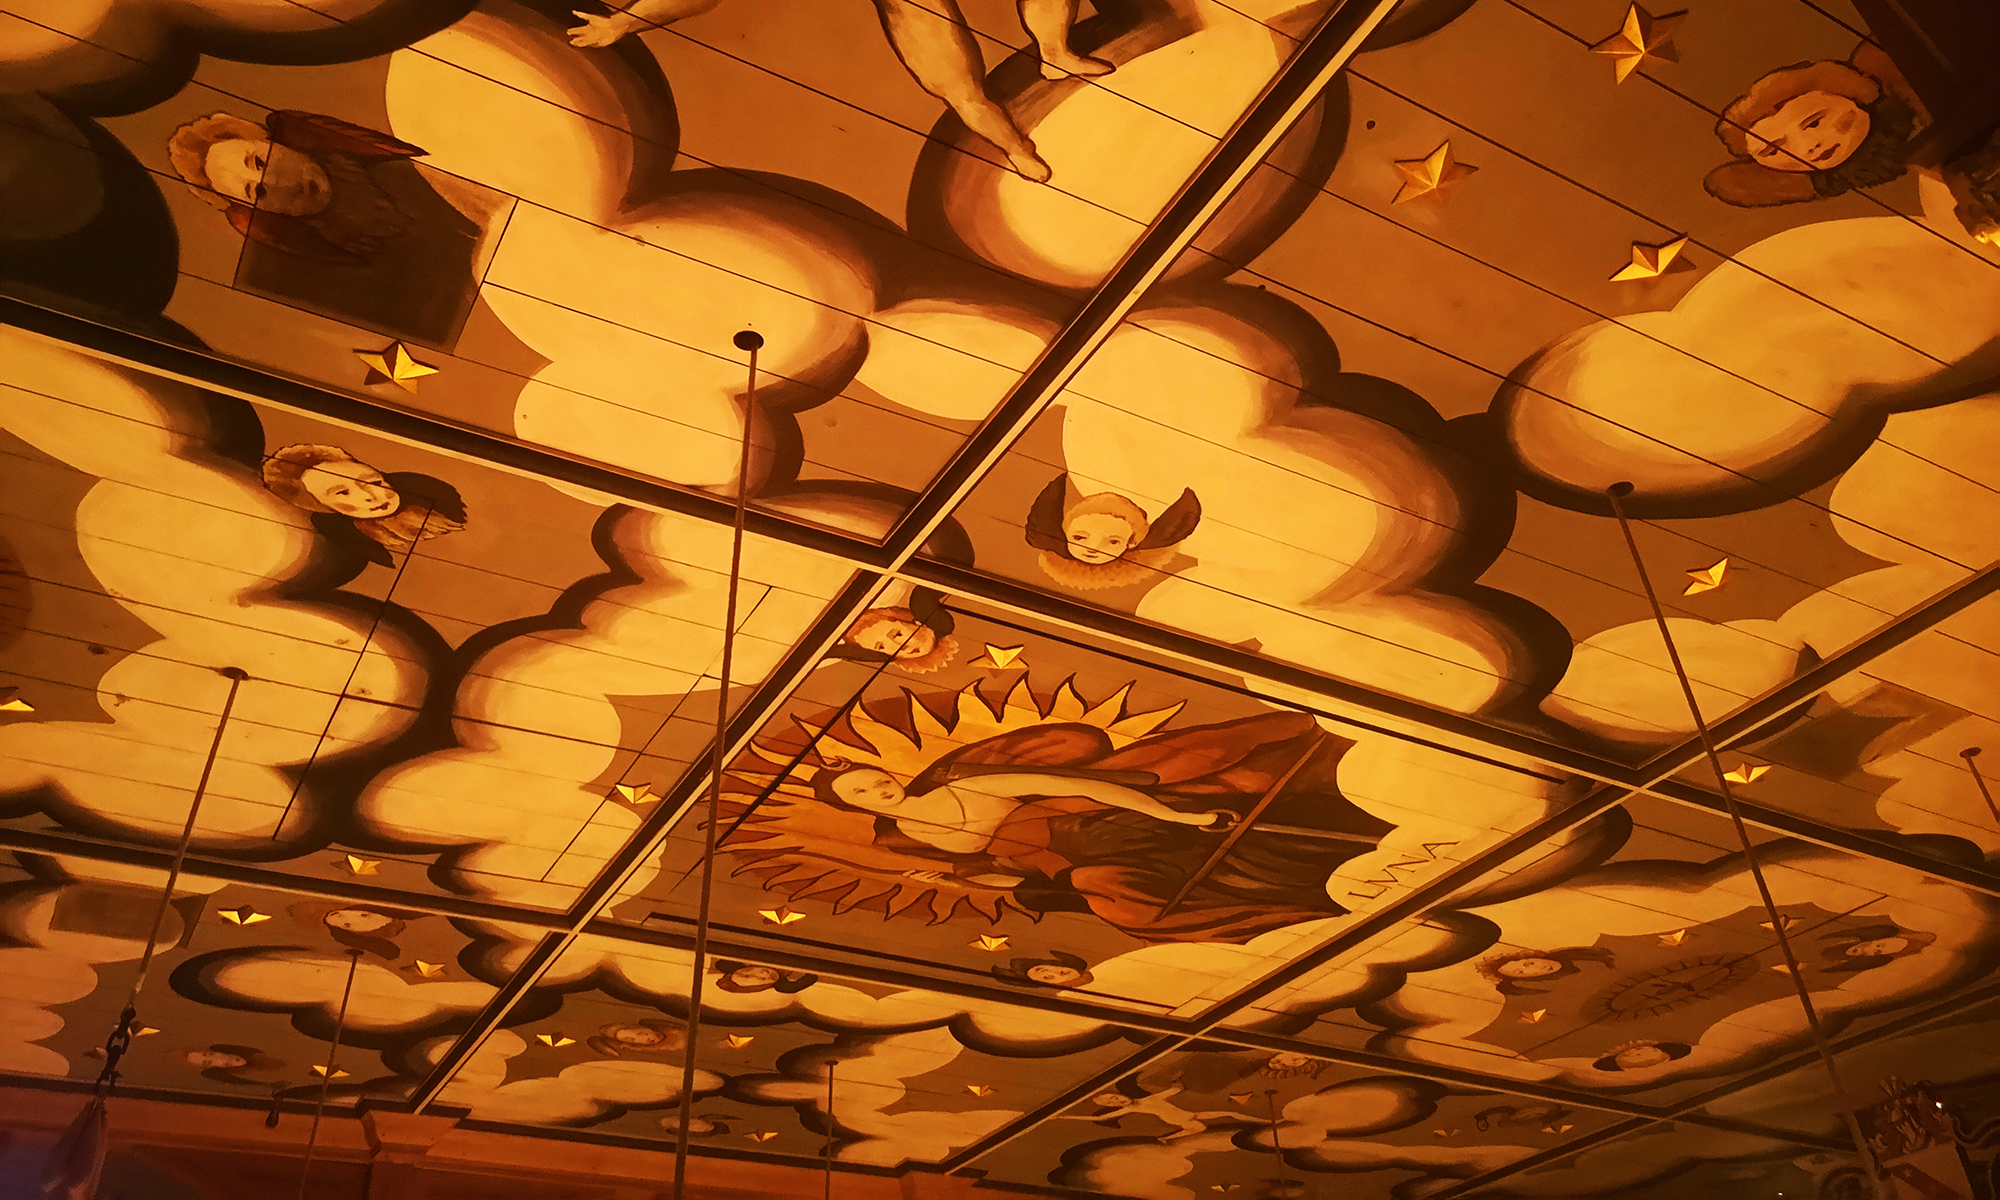 Ceiling of the Sam Wanamaker Playhouse decorated with angels and clouds